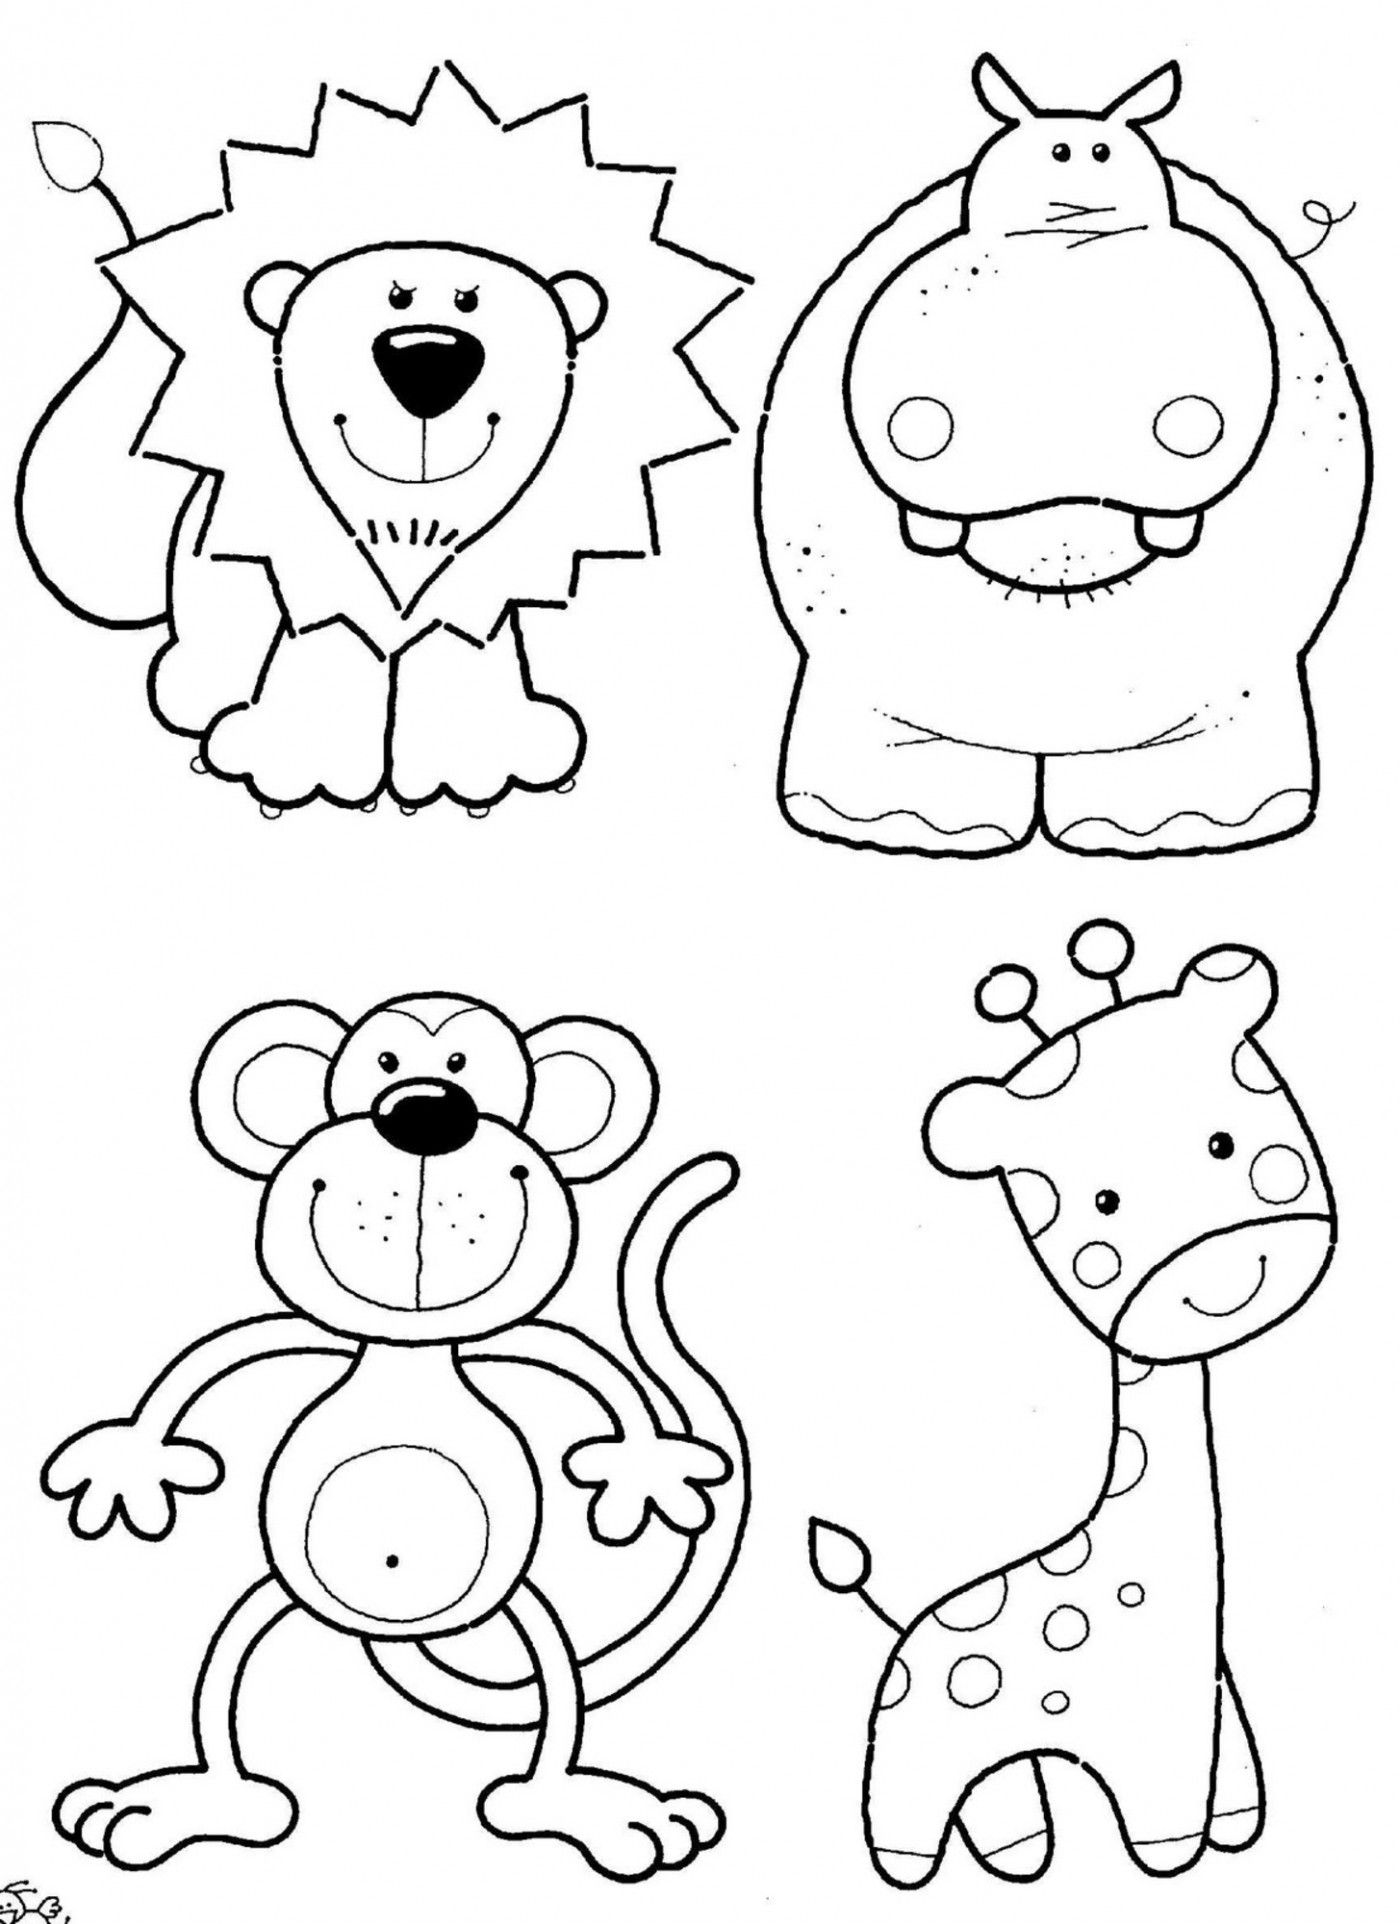 Safari Animal Coloring Page Images - Coloring Home